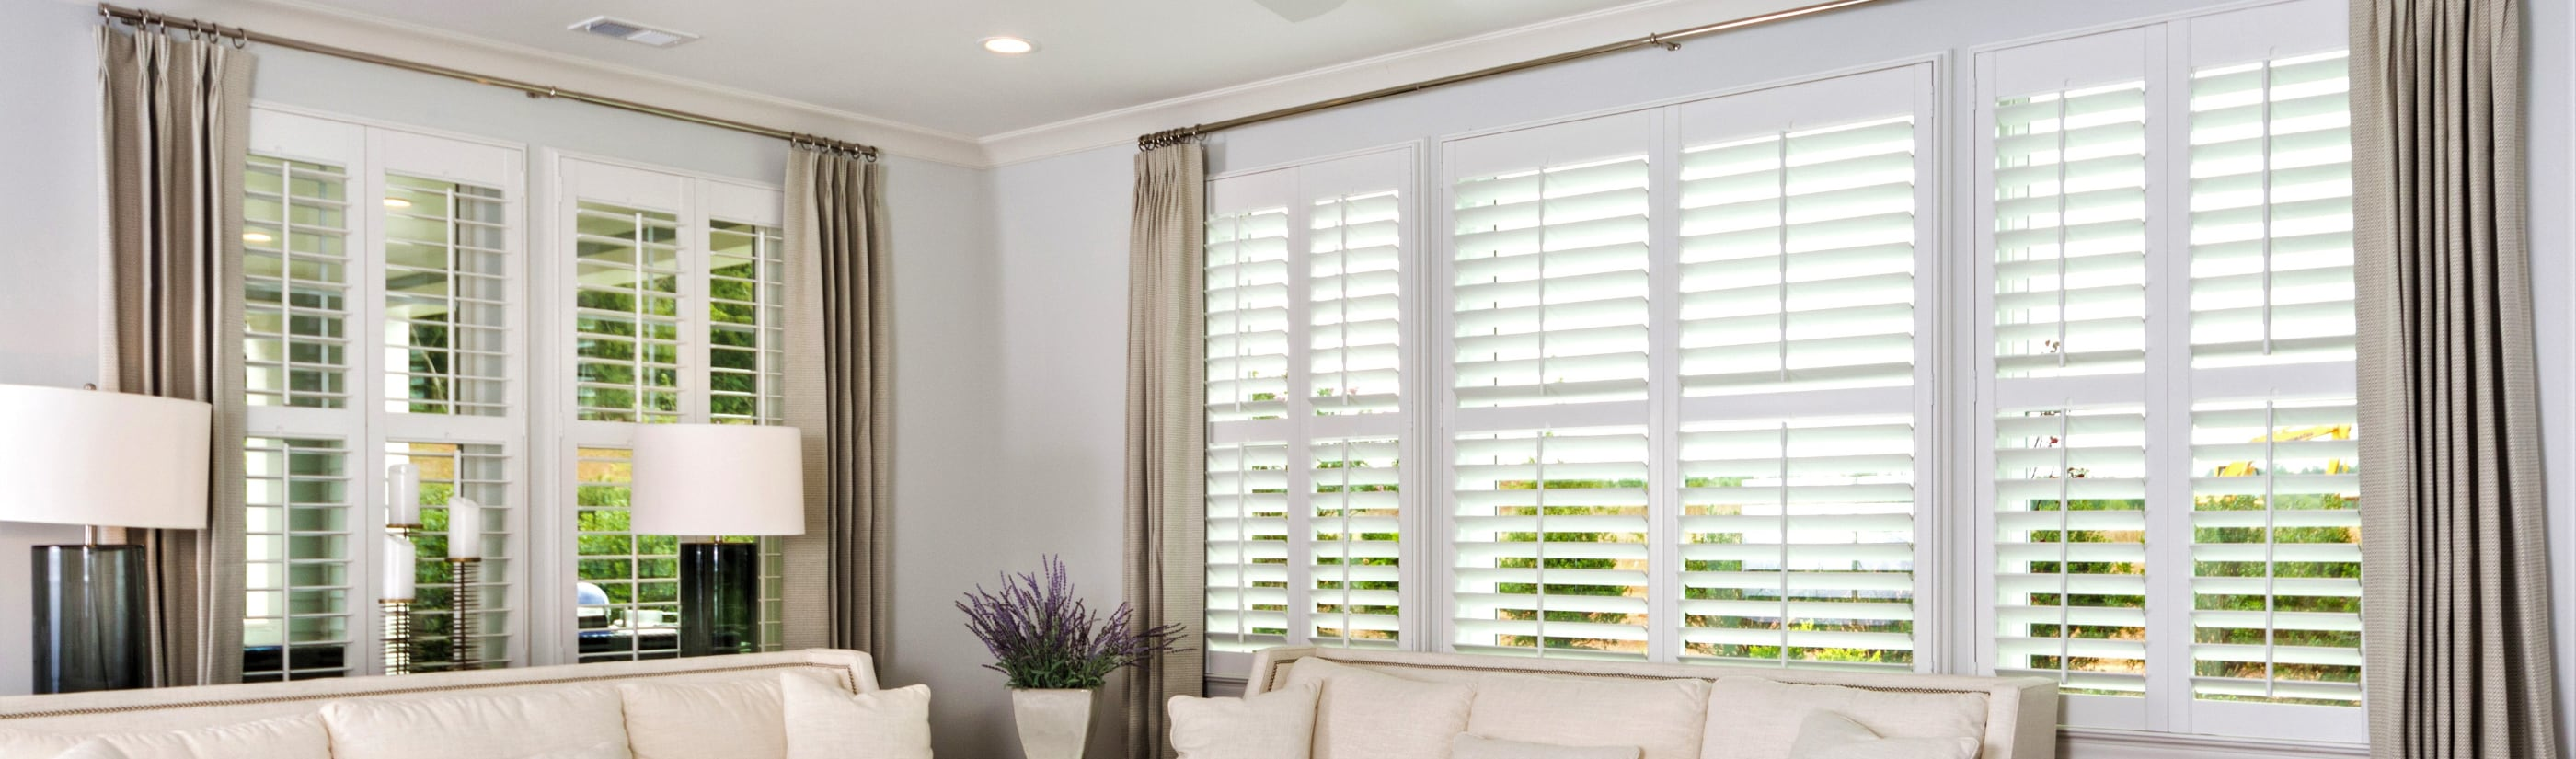 Polywood Shutters Paints In Las Vegas